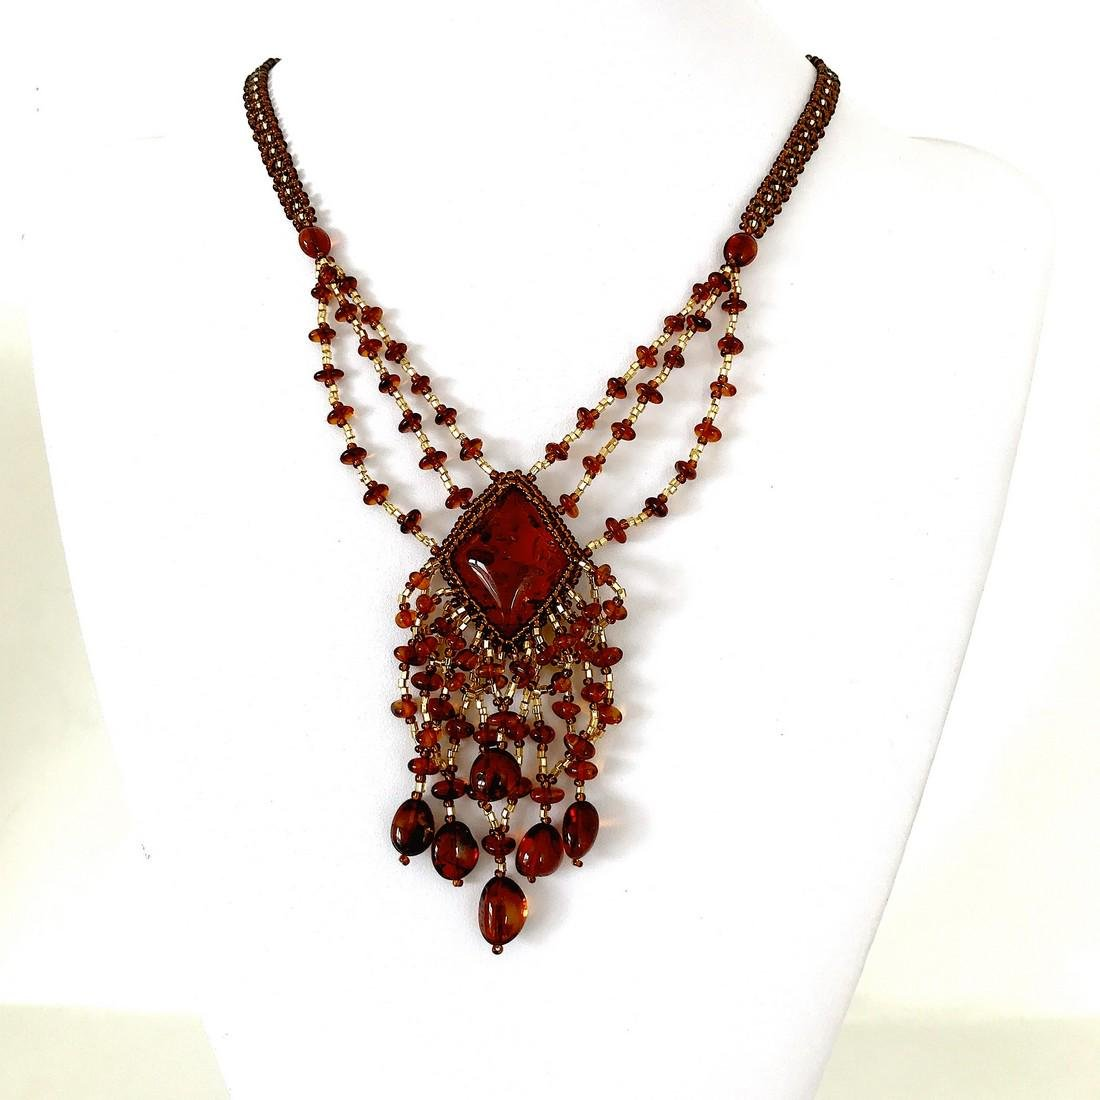 Unique and Incredible Amber Floral Necklace made from